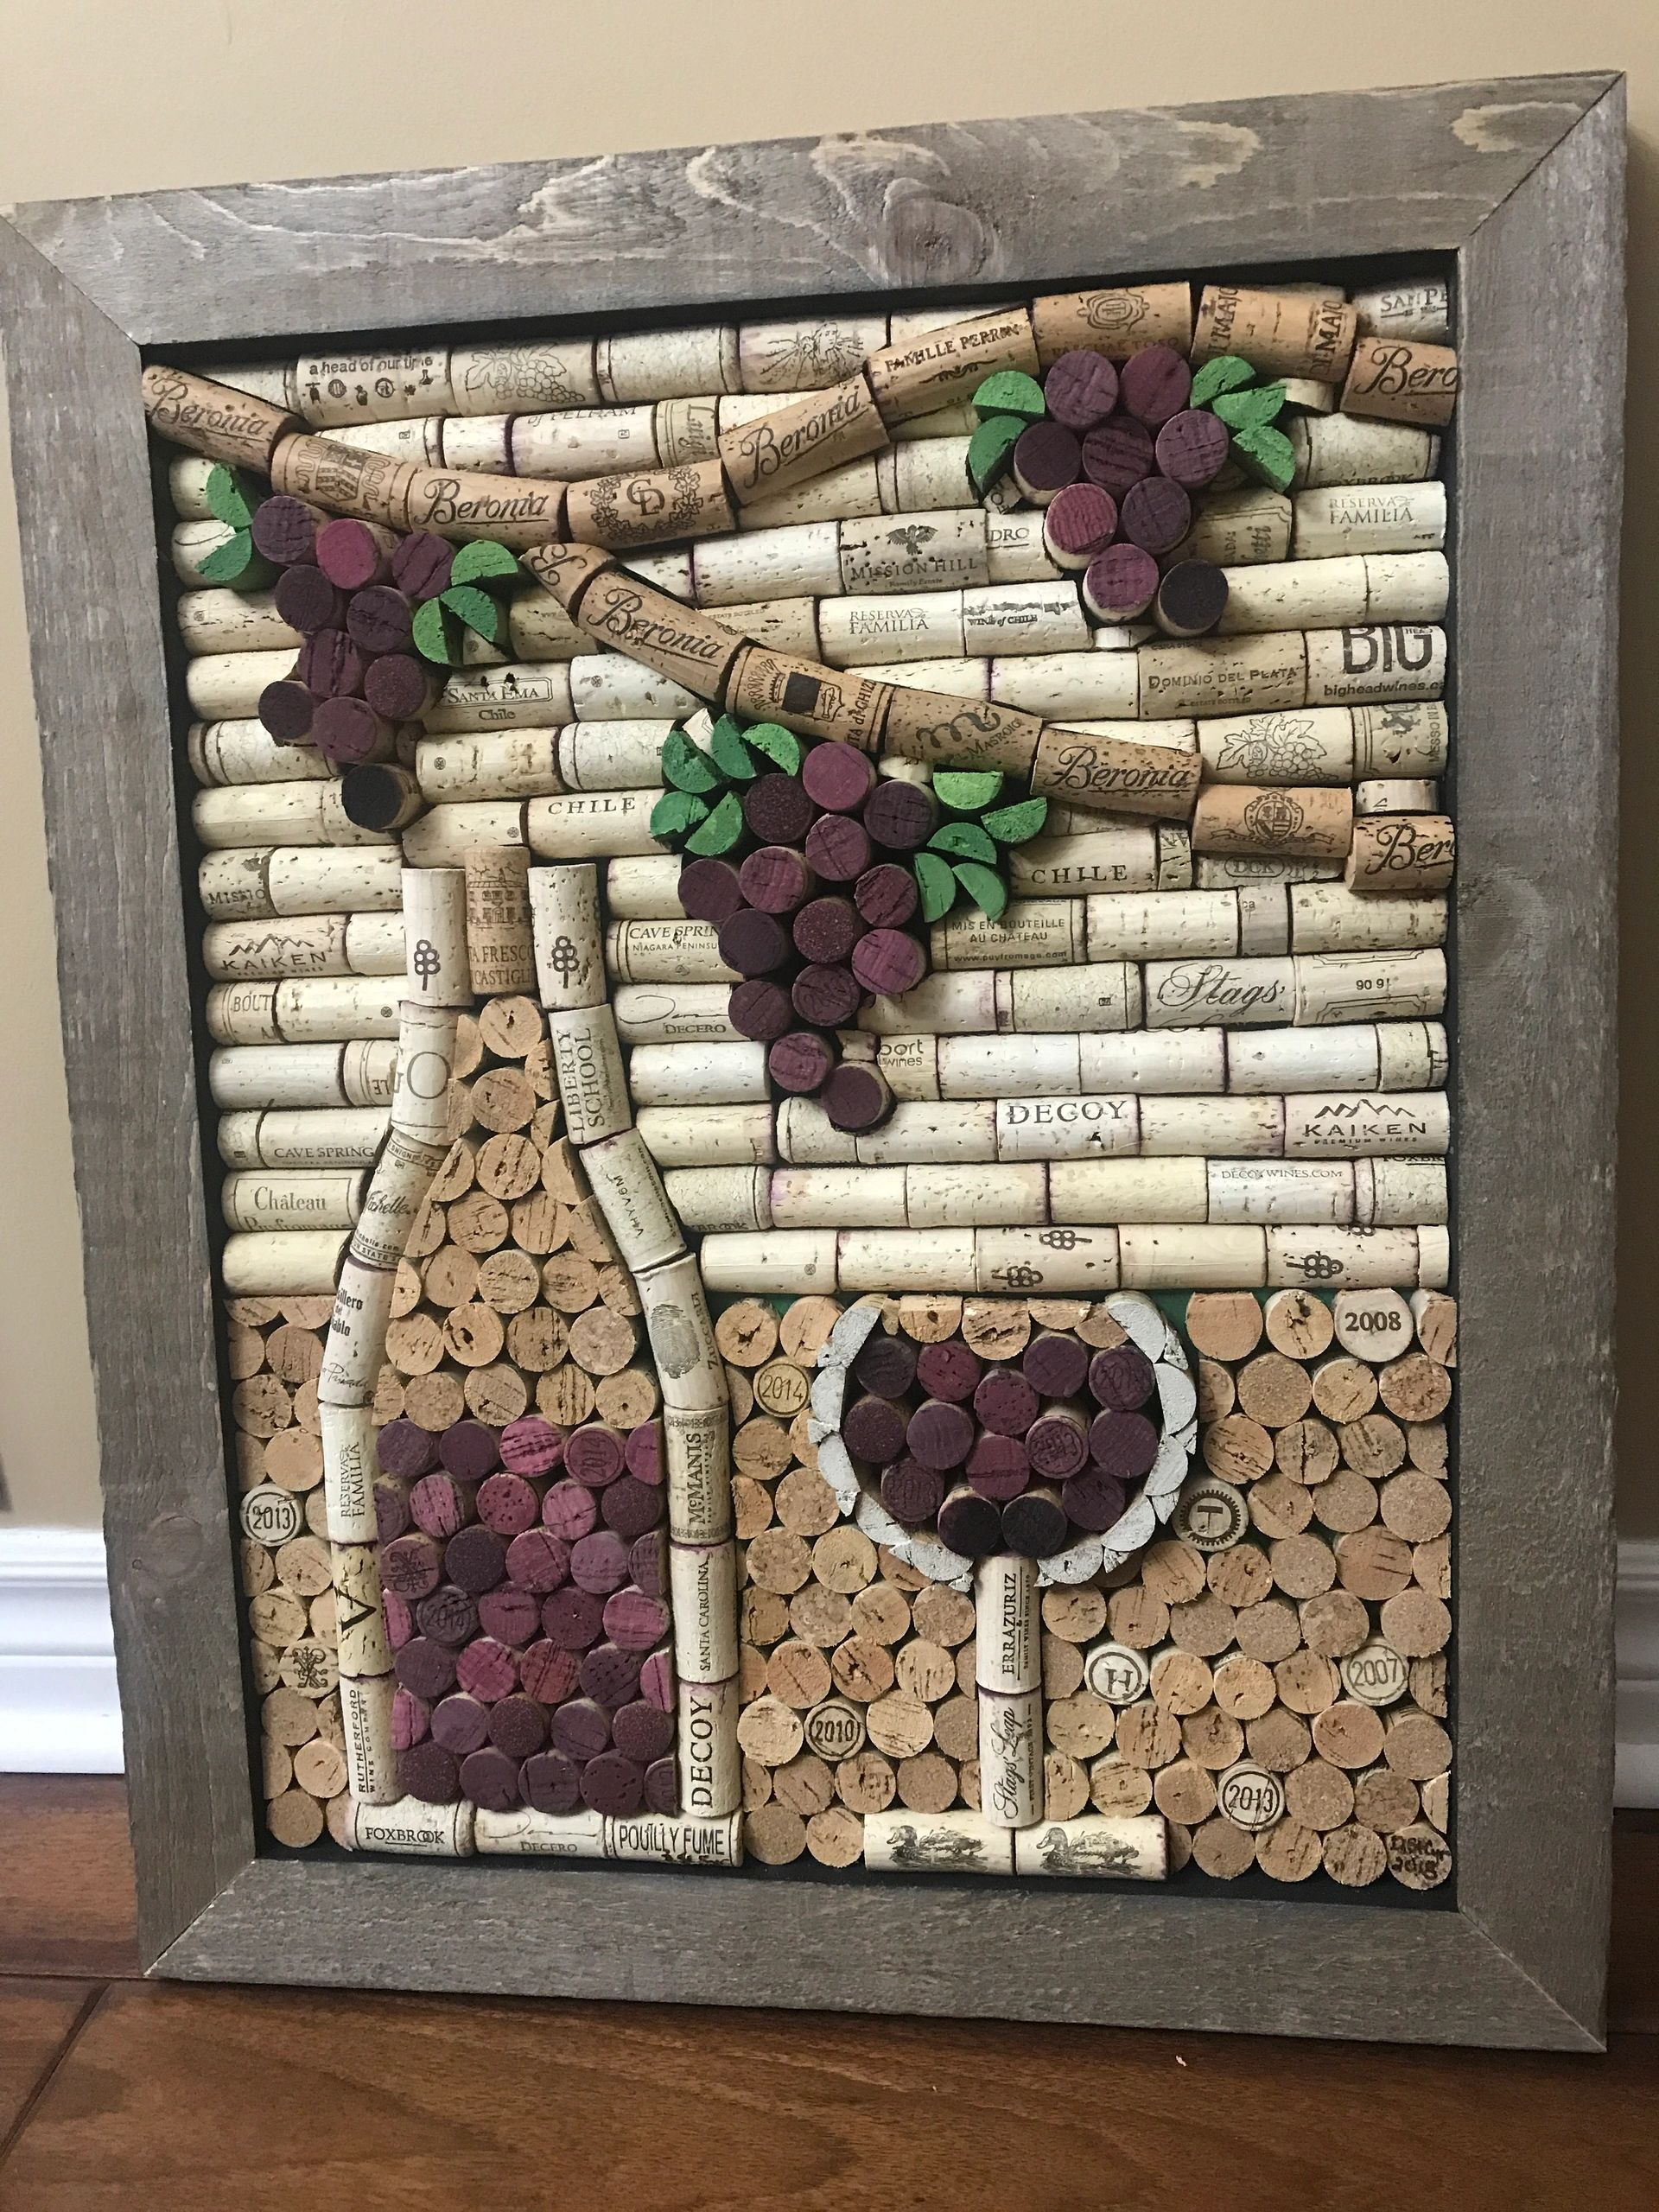 Natural Creations18 Decorations Home Decor In Oakville Wall Decor Natural Creations18 Cork Crafts Diy Wine Cork Crafts Wine Cork Diy Crafts